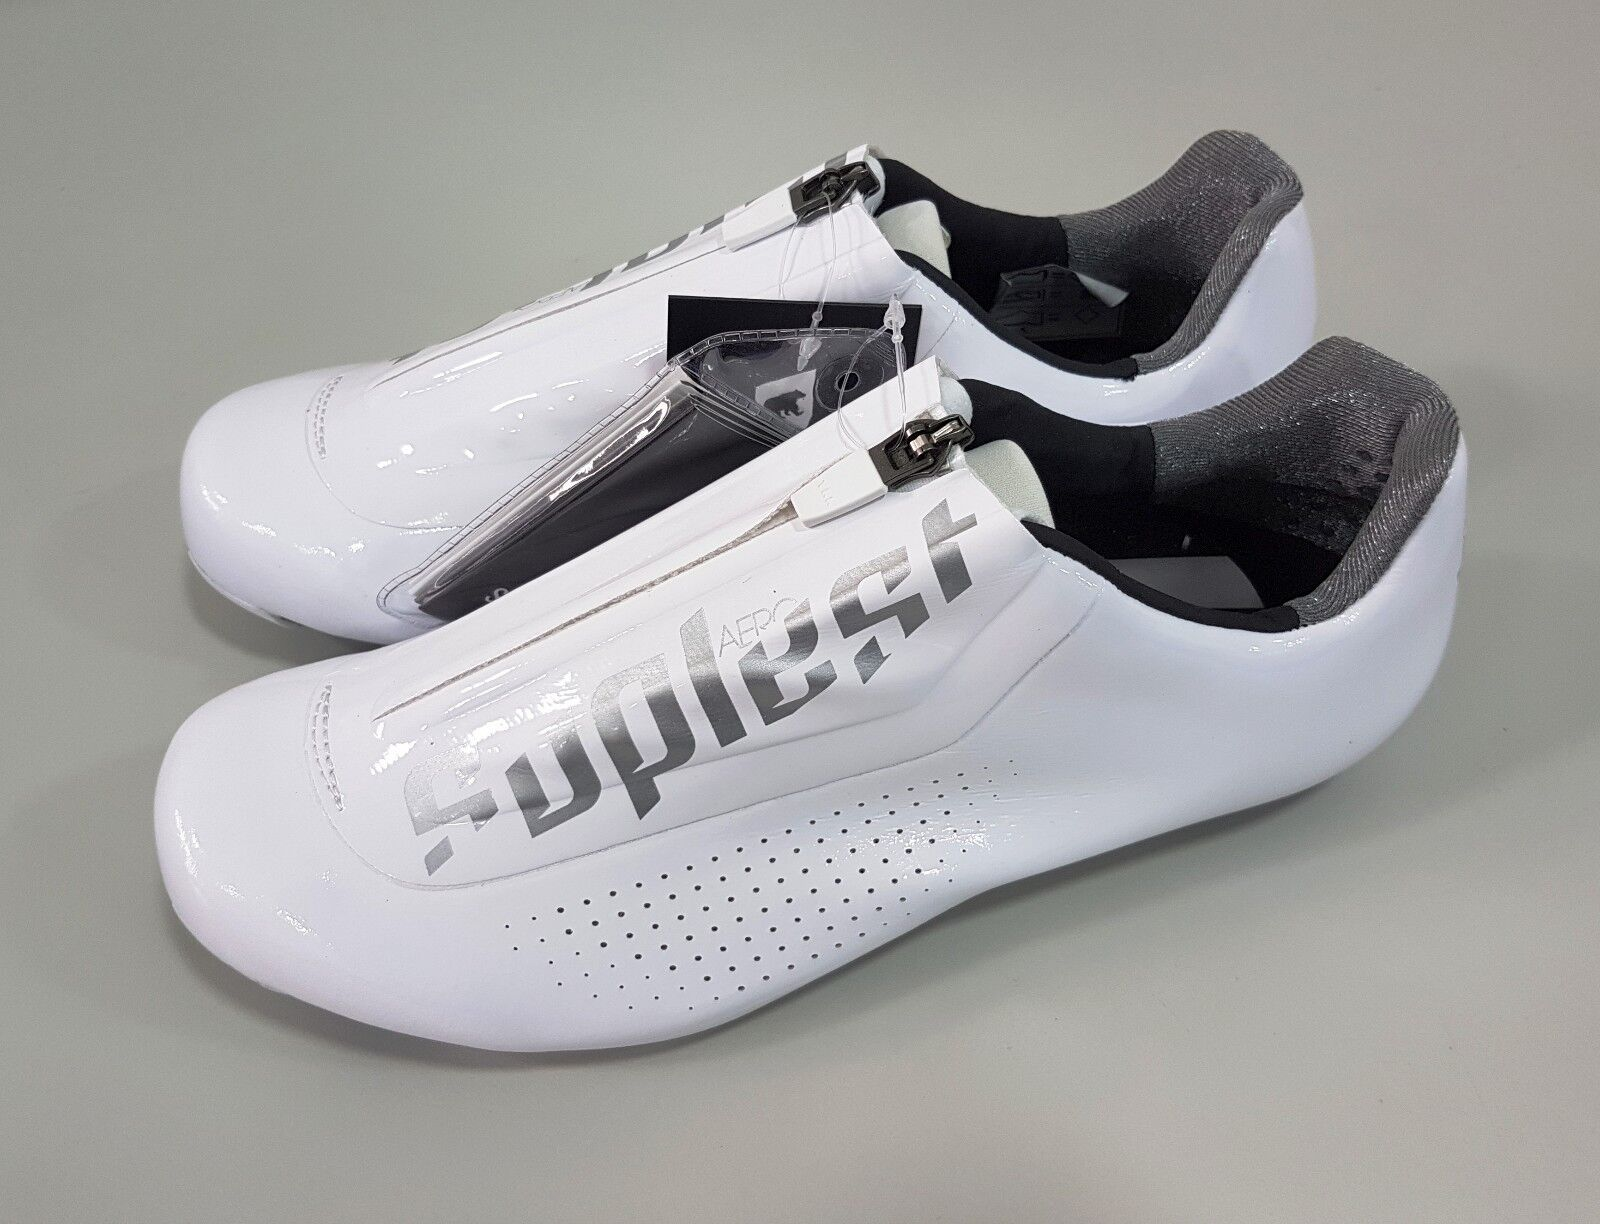 Suplest Aero Carbon Road Bike  Cycling Road shoes White Size 40  up to 60% discount